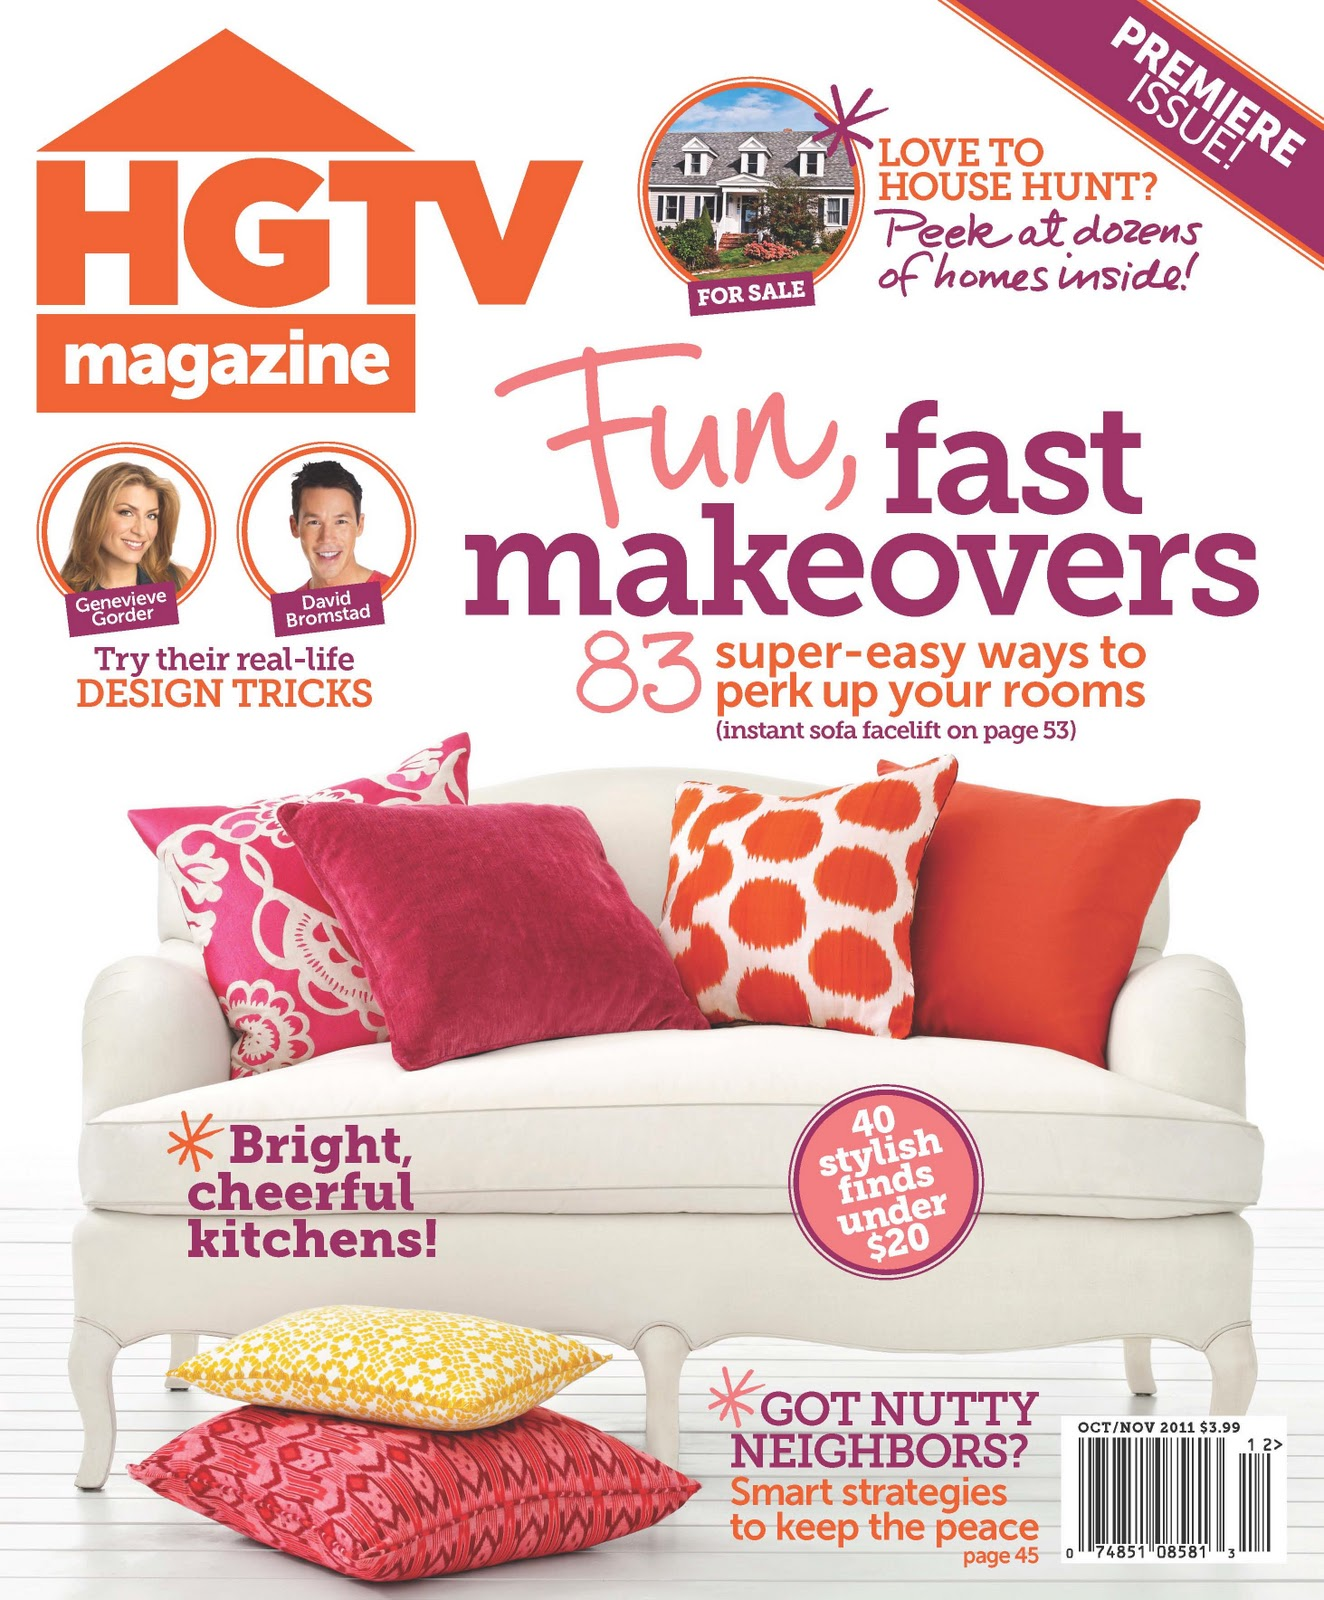 hgtv magazine 2014 furniture. Hgtv Magazine 2014 Furniture. Oct 2011 Sarah Furniture T L